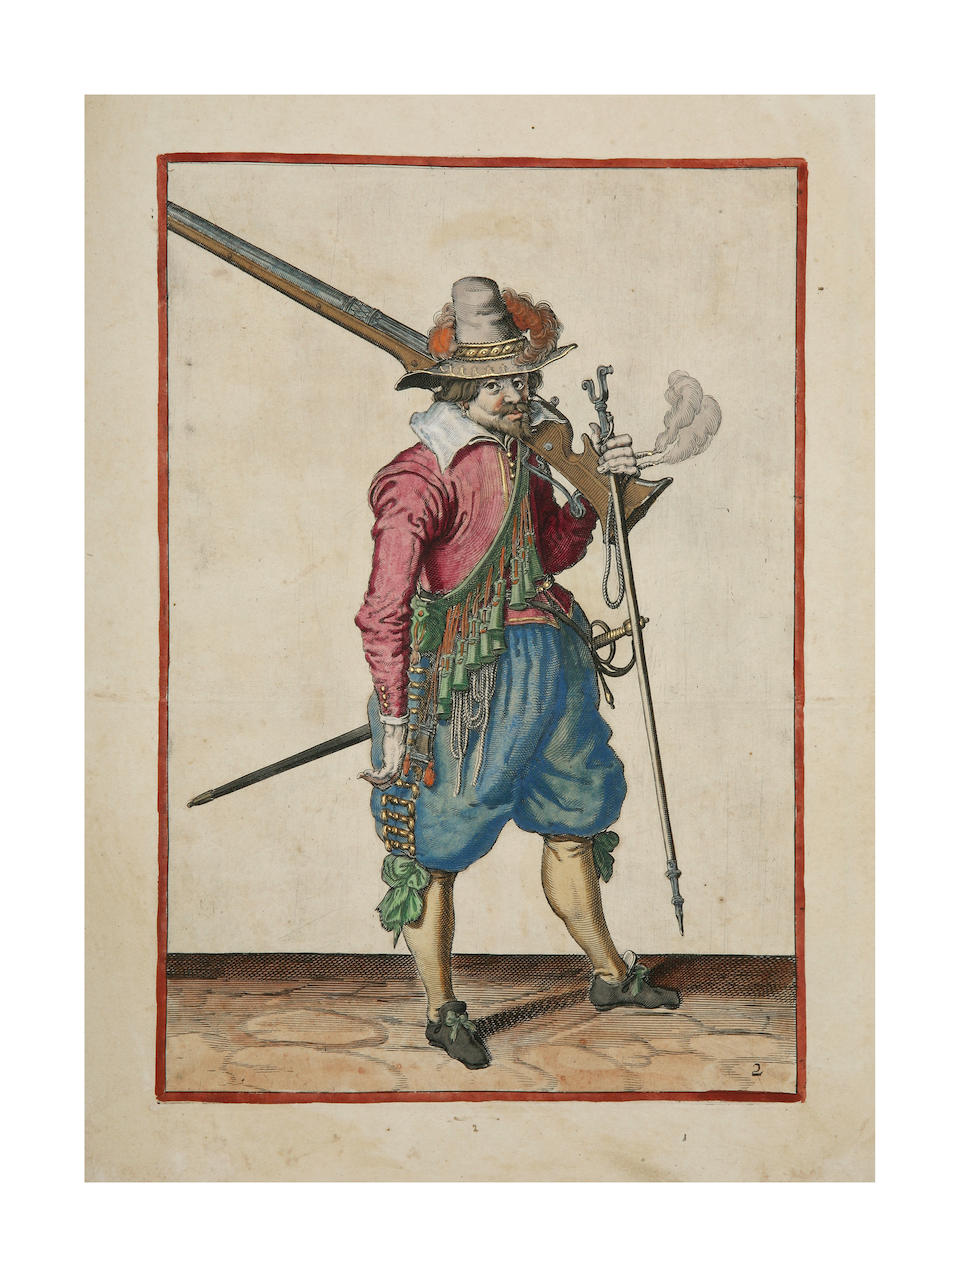 GHEYN (JACOB DE) The Exercises of Armes, for Calivres, Muskettes, and Pikes]